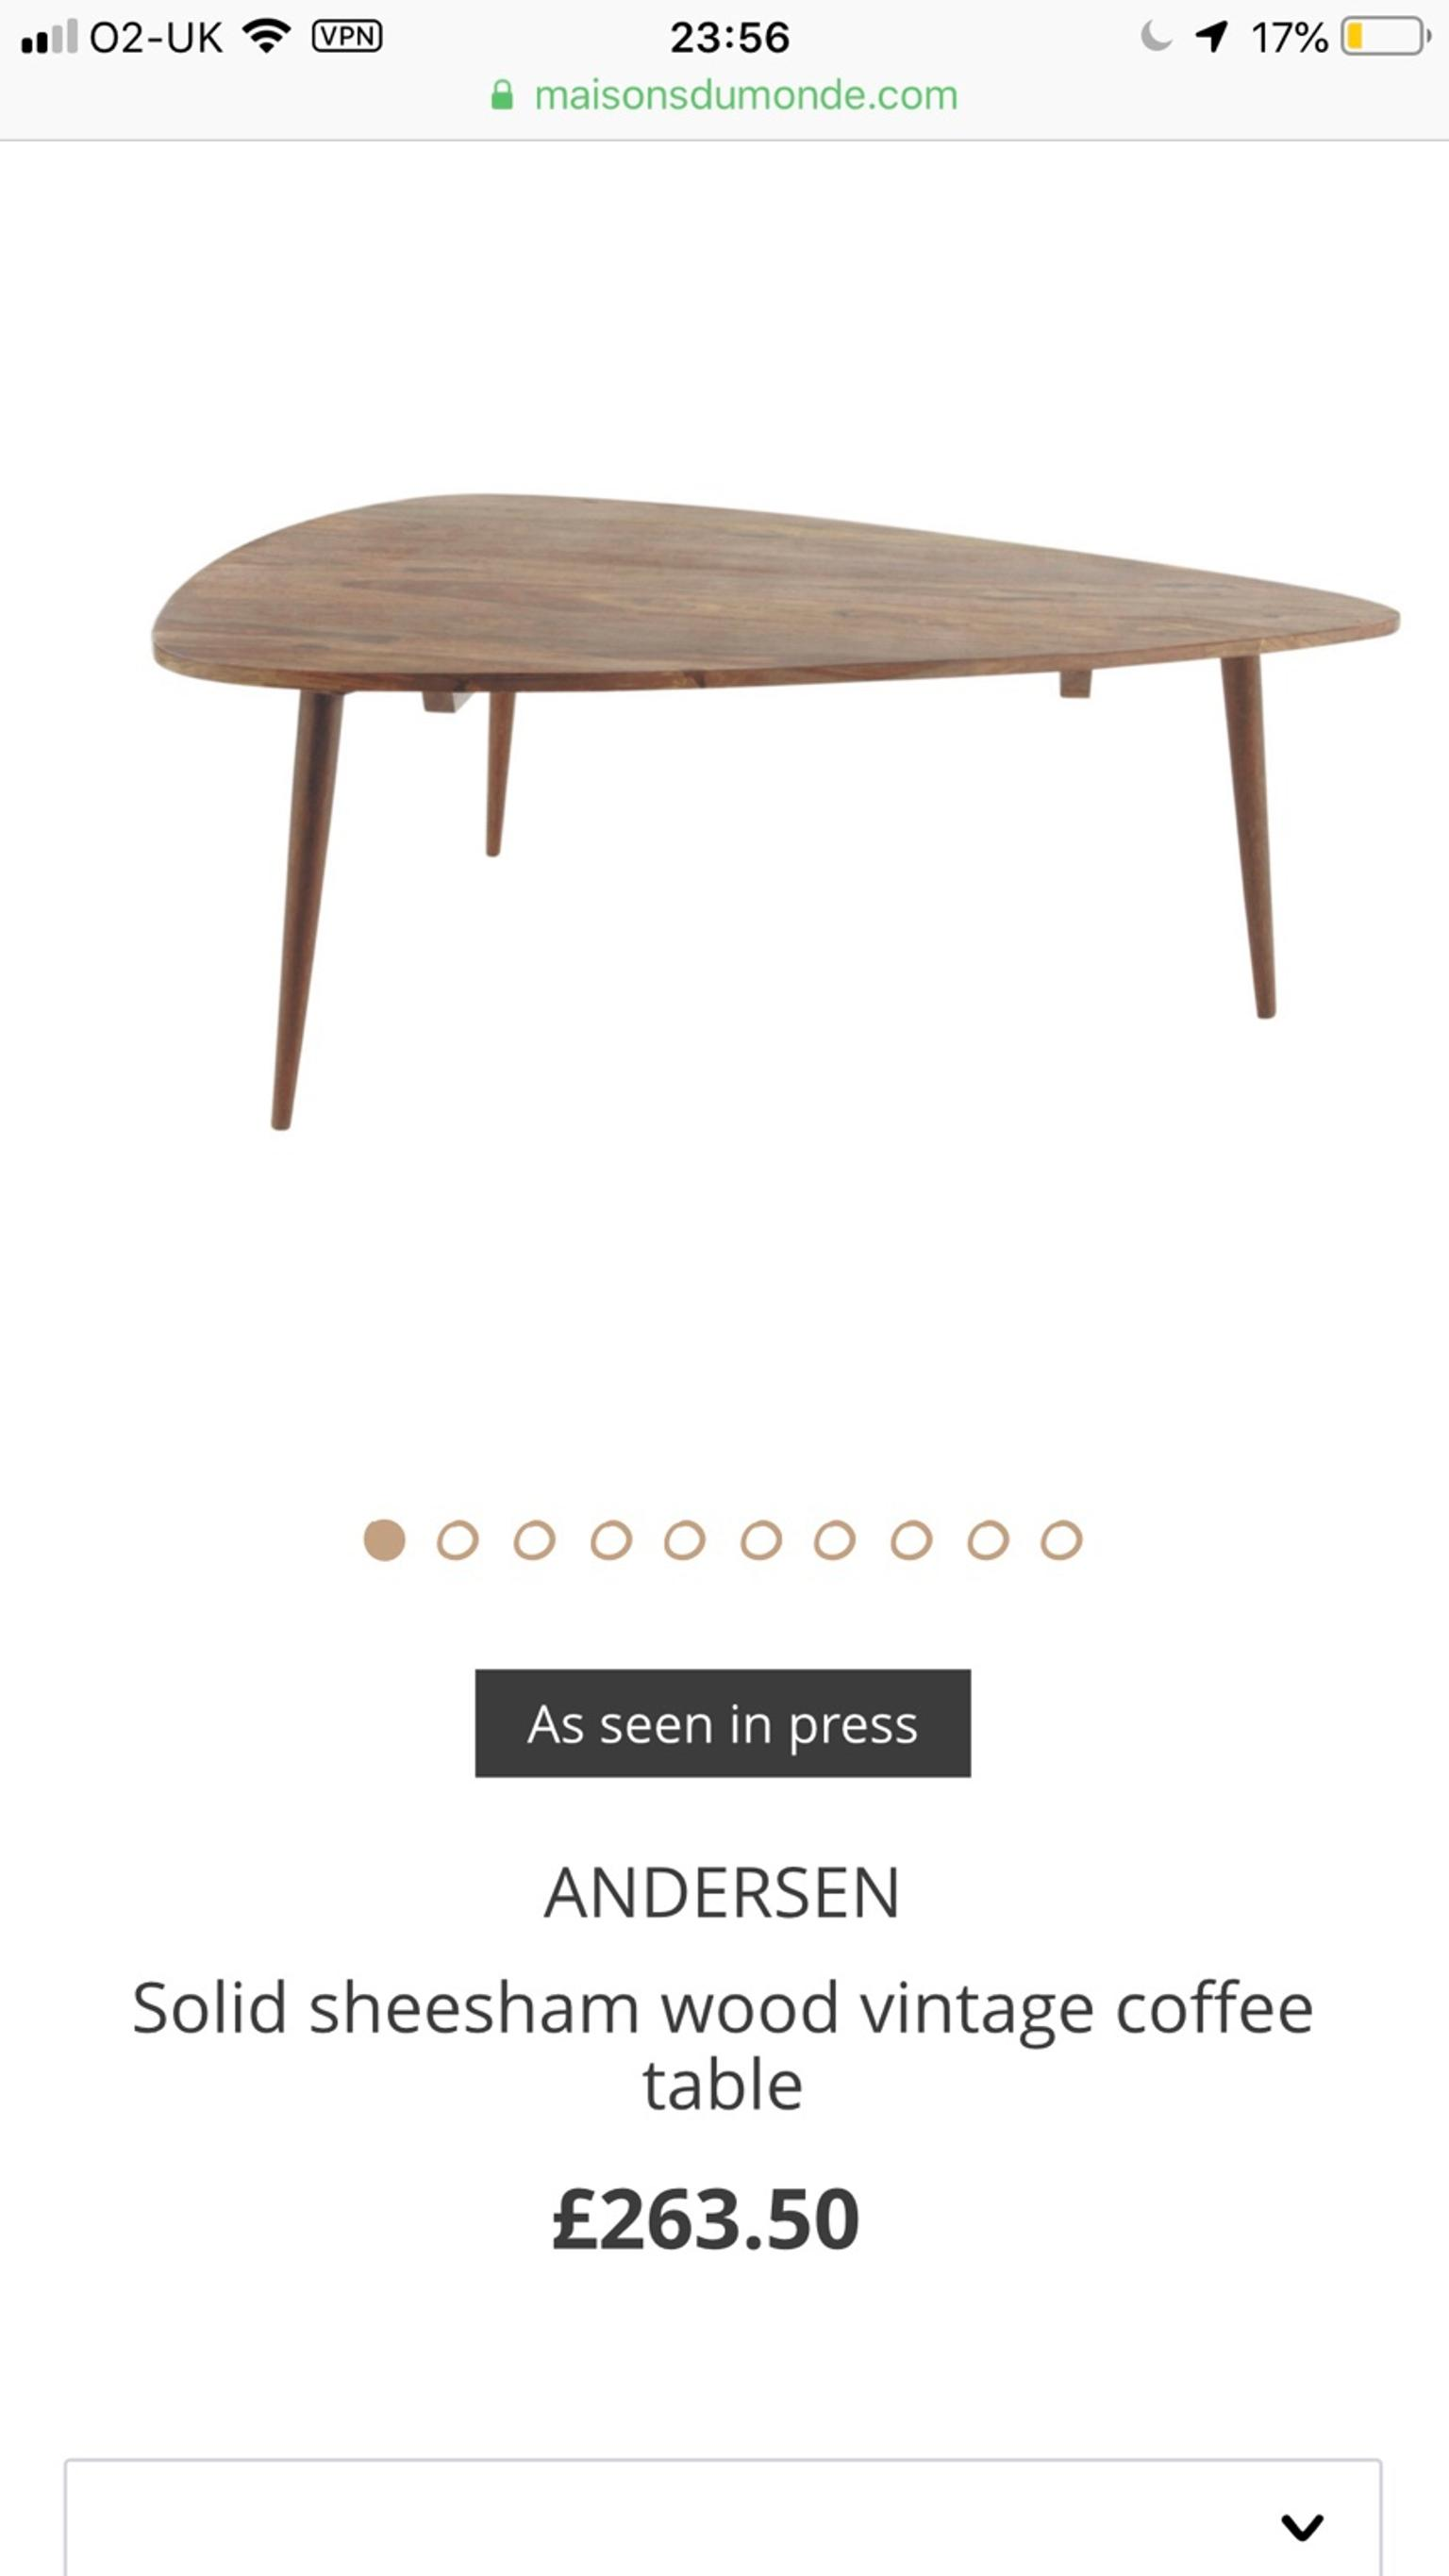 Maison Du Monde Andersen brand new coffee table from maison du monde